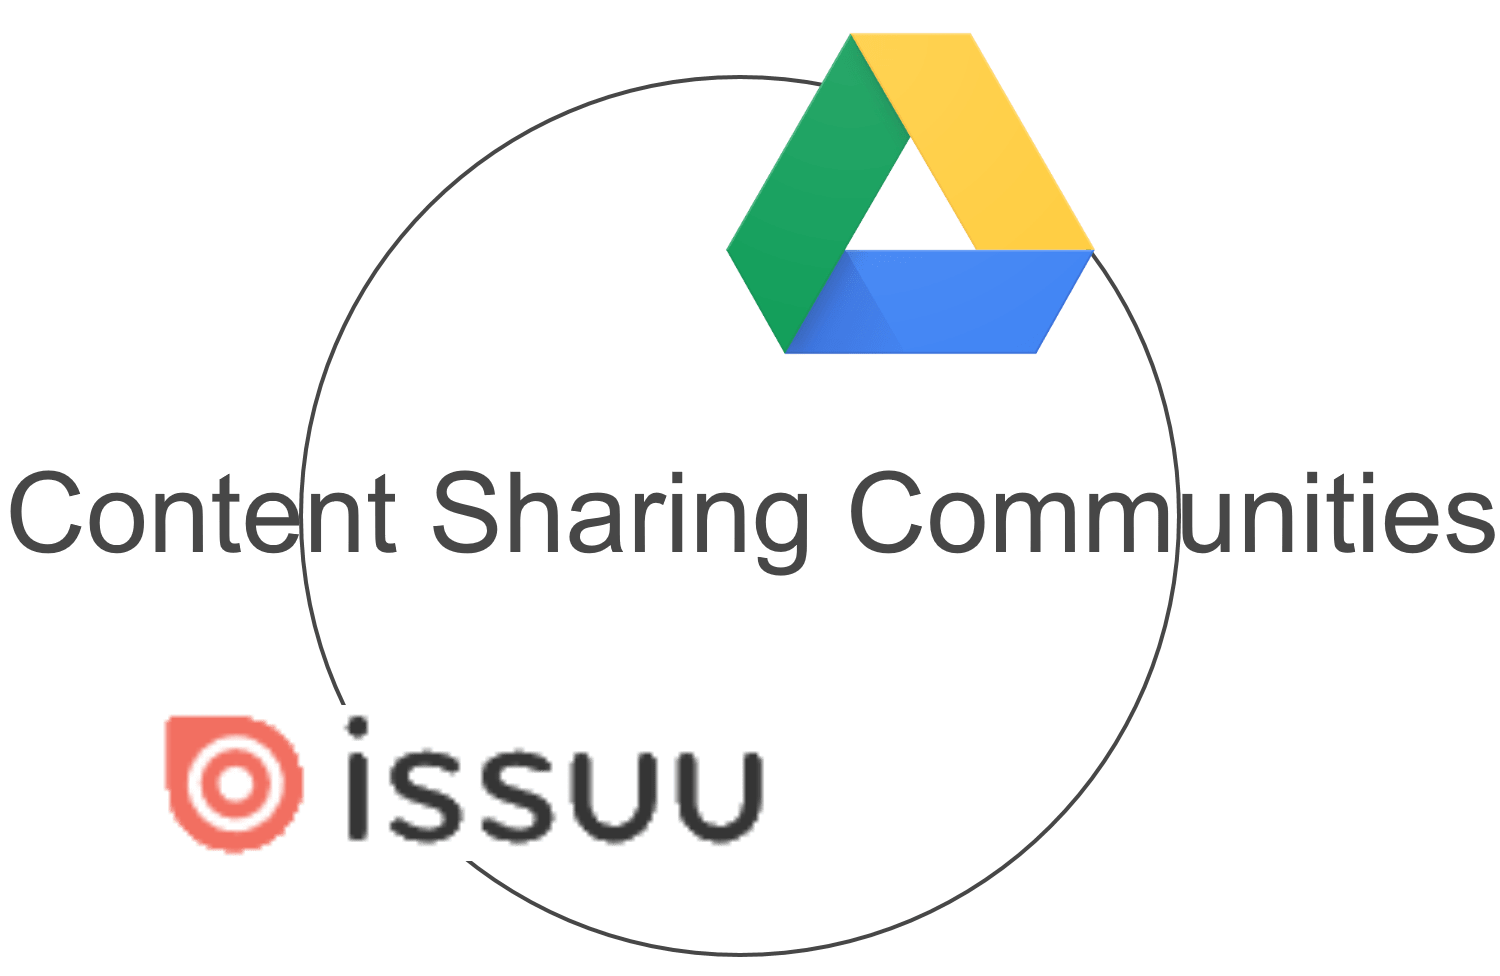 Content Sharing Communities